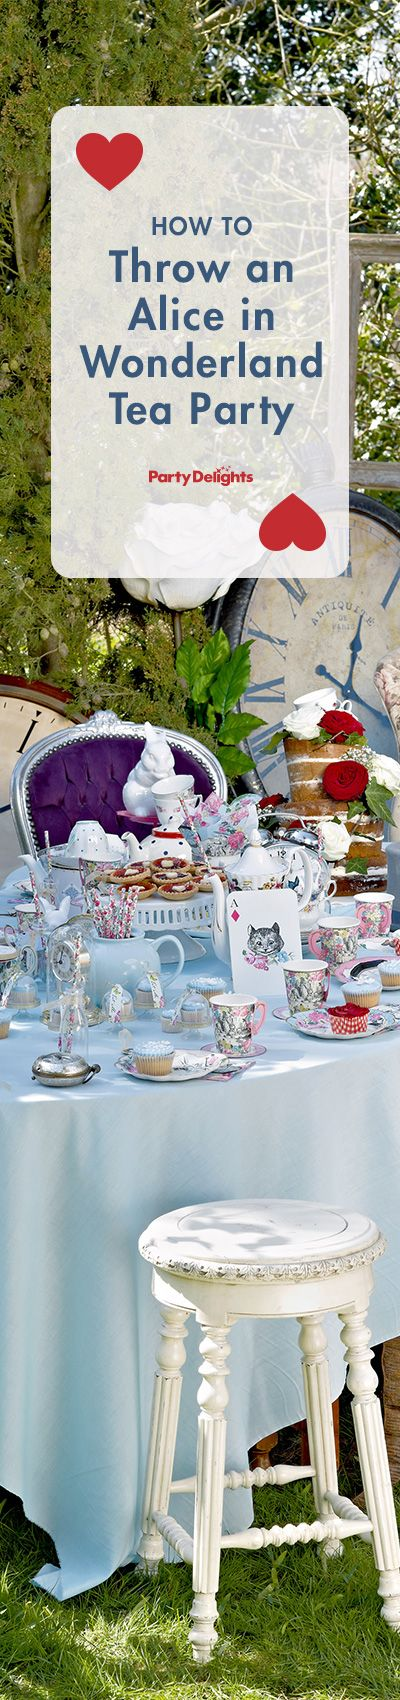 Find out how to throw a gorgeous Alice in Wonderland or Mad Hatter's tea party - complete with decorating ideas and food ideas. Perfect for a baby shower, wedding shower or birthday theme. Visit partydelights.co.uk to pick up everything we used to create this party.